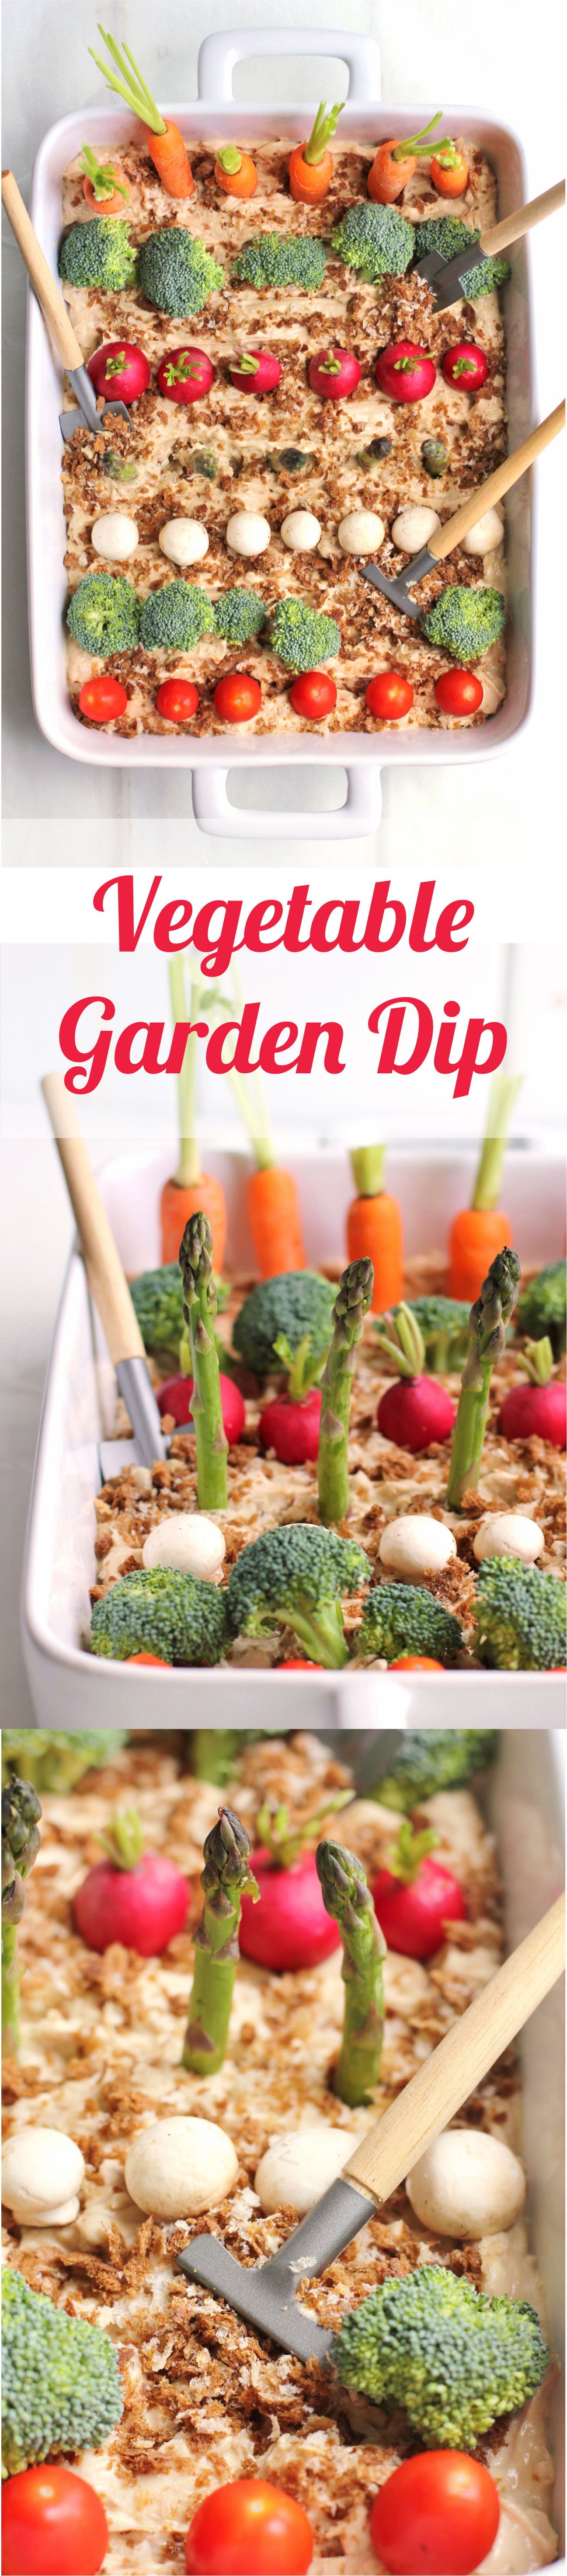 "This cute vegetable garden dip is perfect for a spring or summer party, shower or brunch! The ""dirt"" is classic onion dip topped with marble rye bread crumbs  